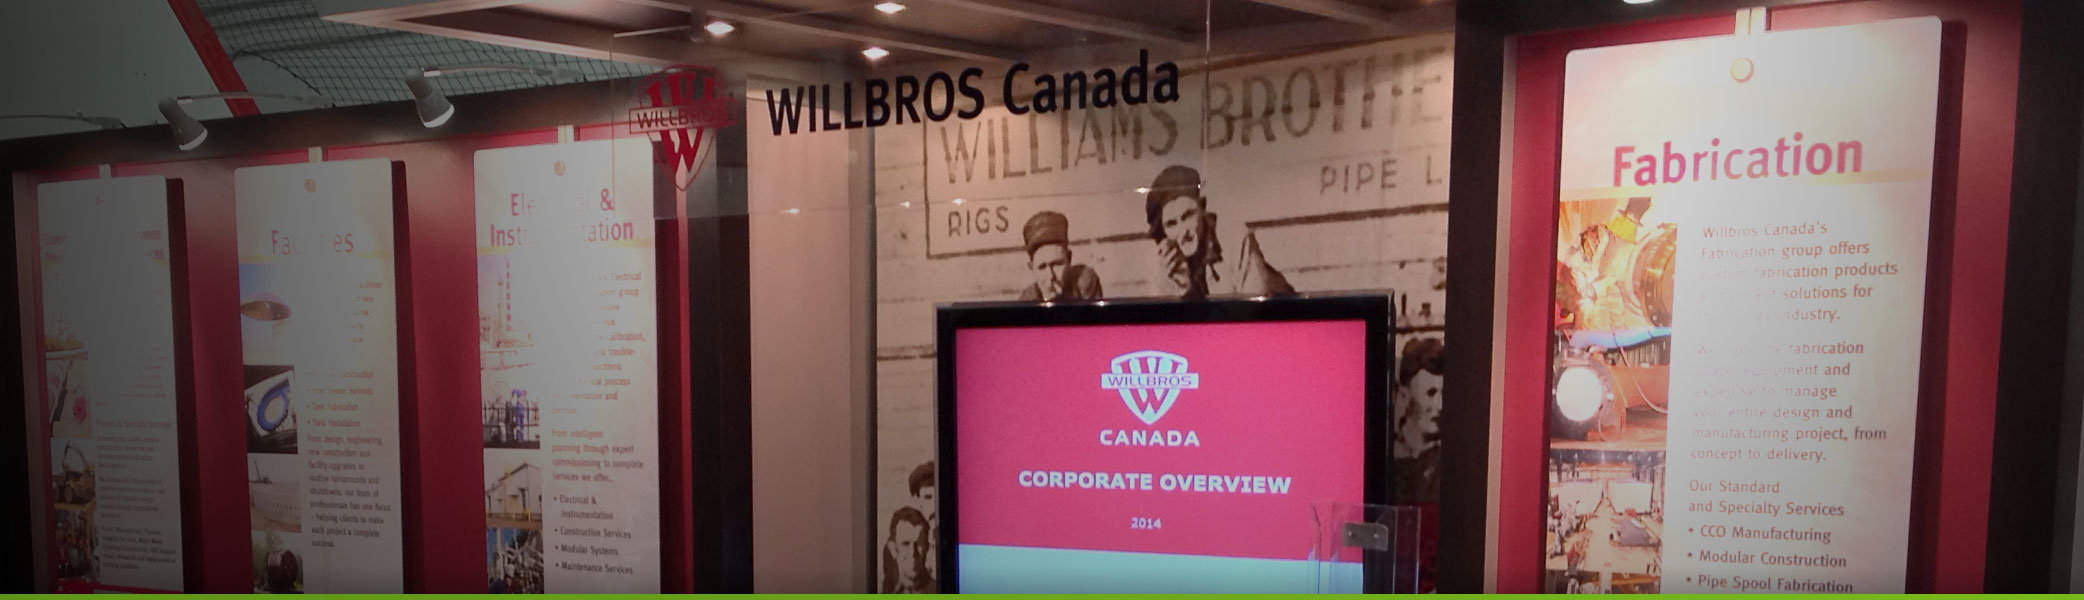 Case Studies: Willbros